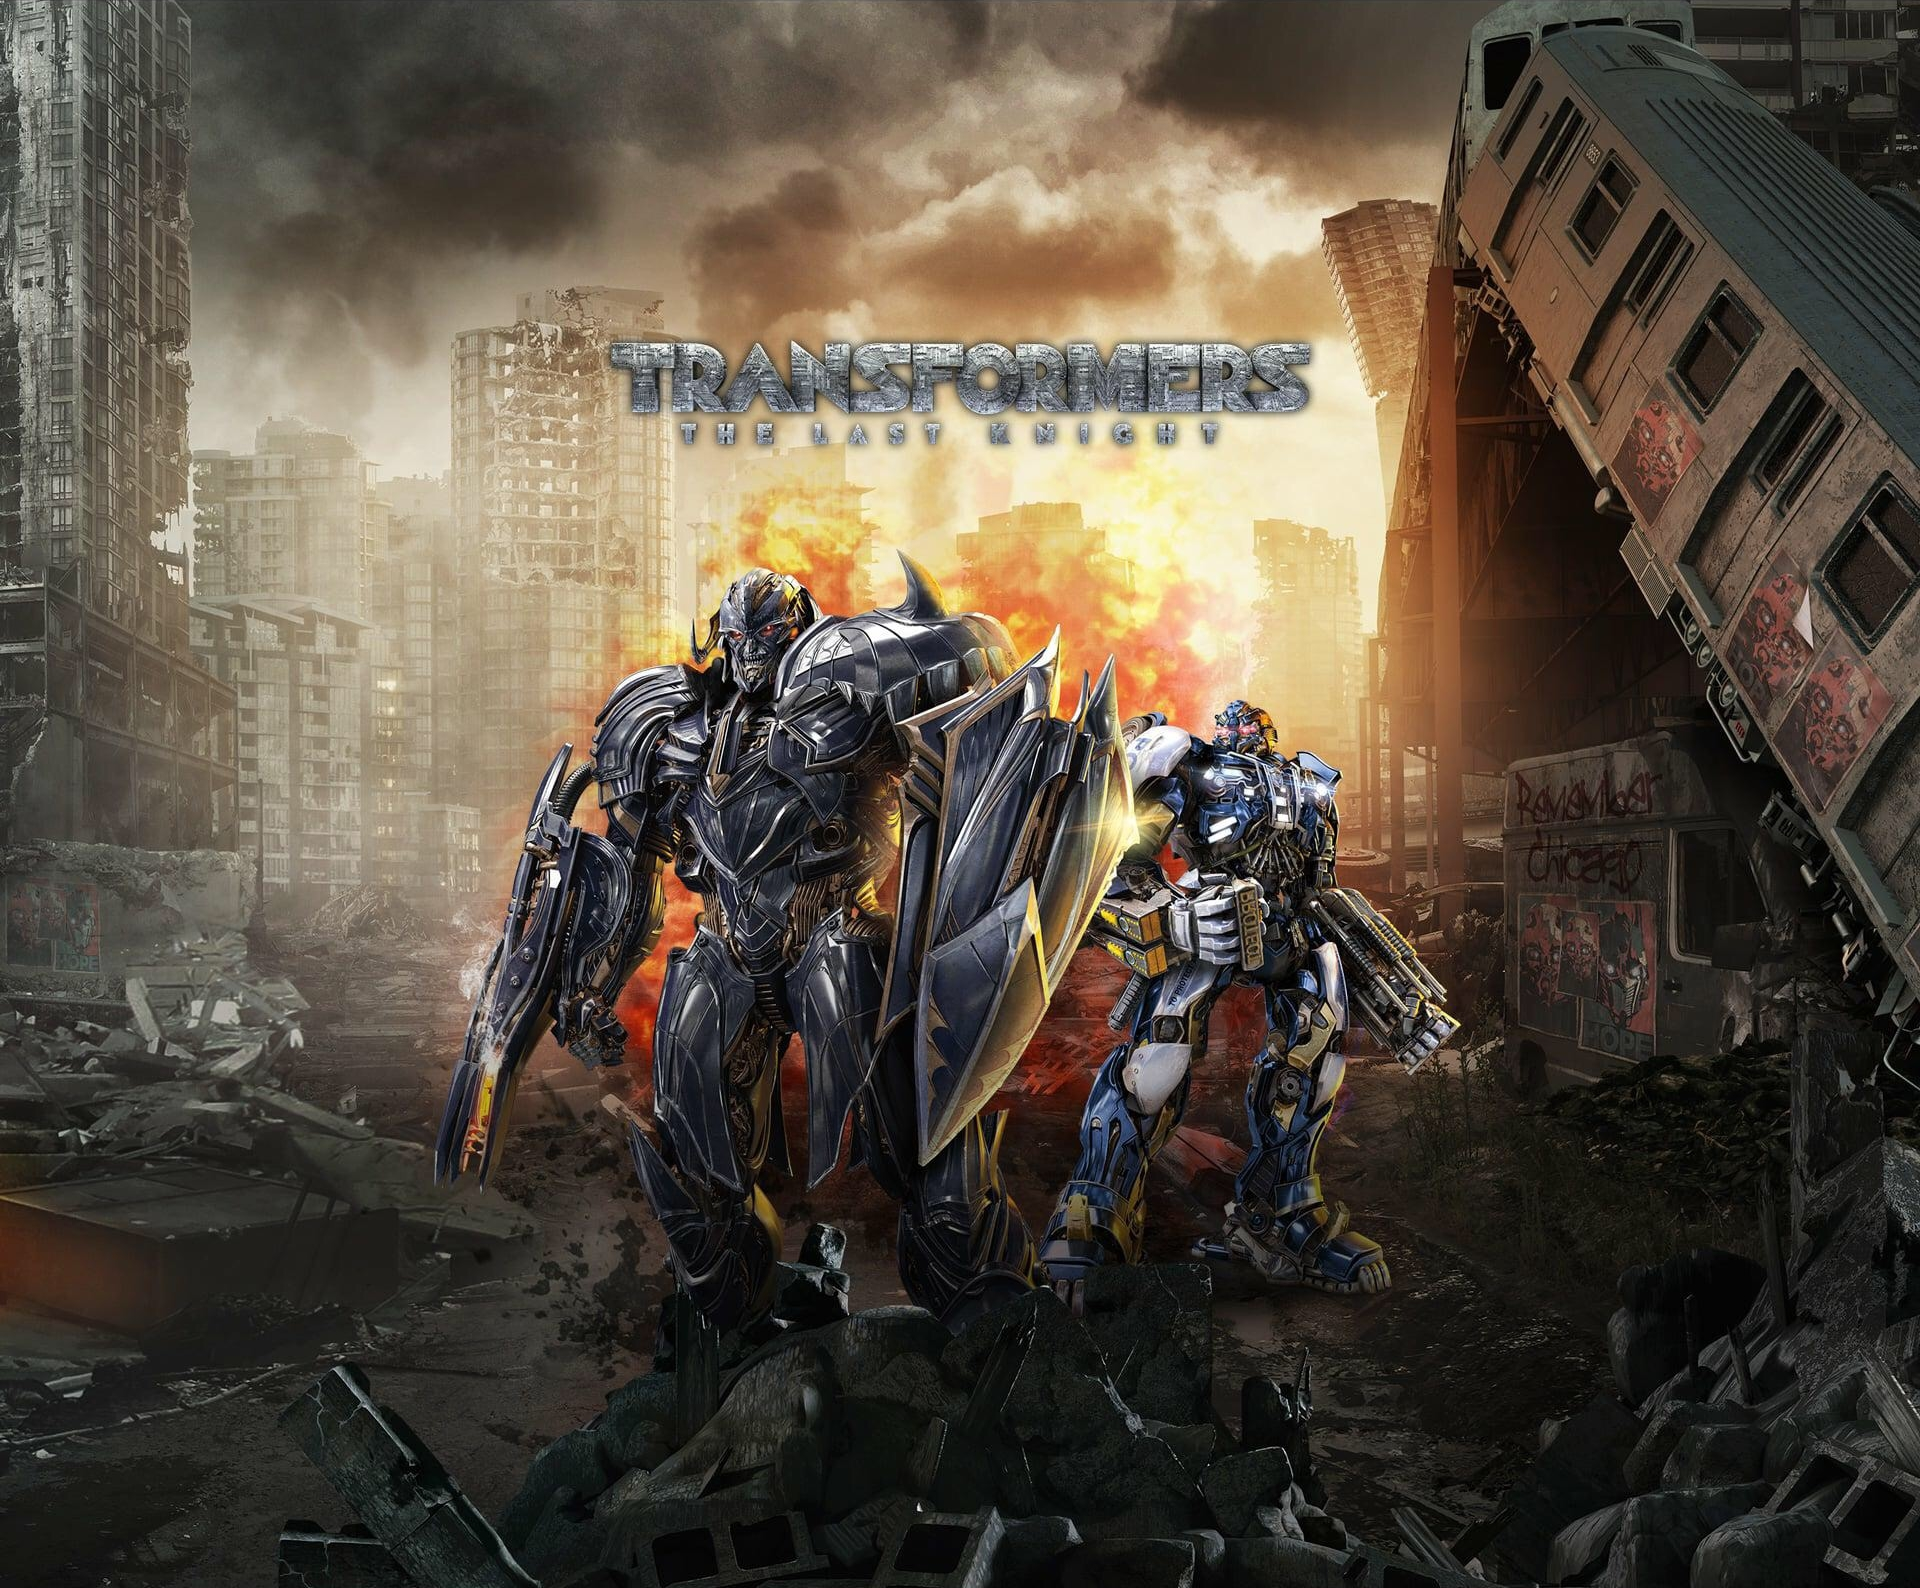 Transformers 2007 movie download free full.